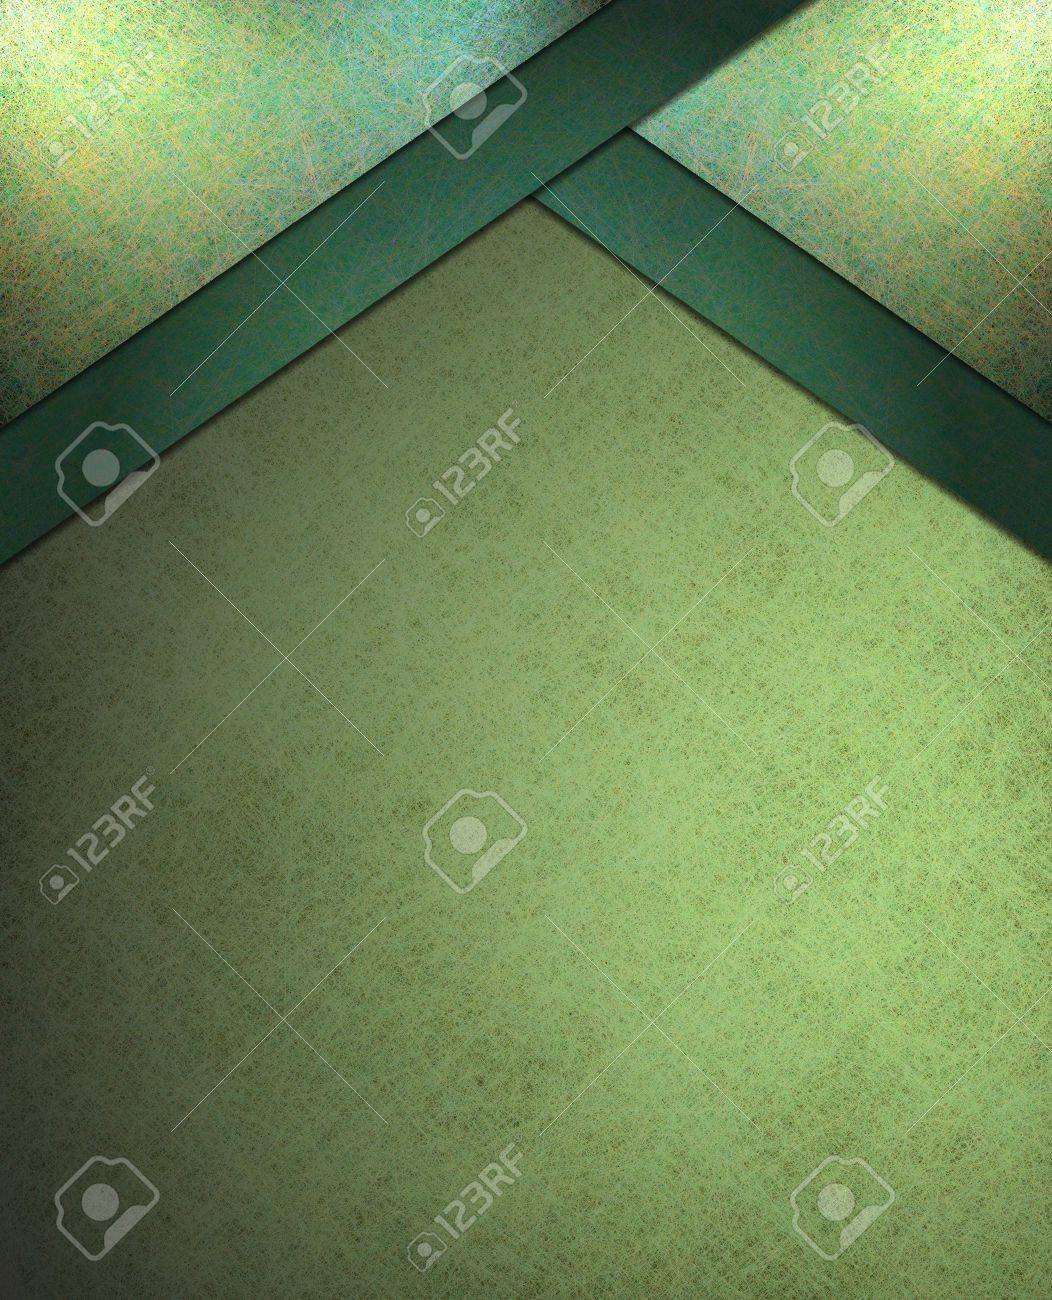 beautiful abstract  lighted green background with black vintage grunge texture and vignette border and angled corner layout design with copyspace Stock Photo - 12624116